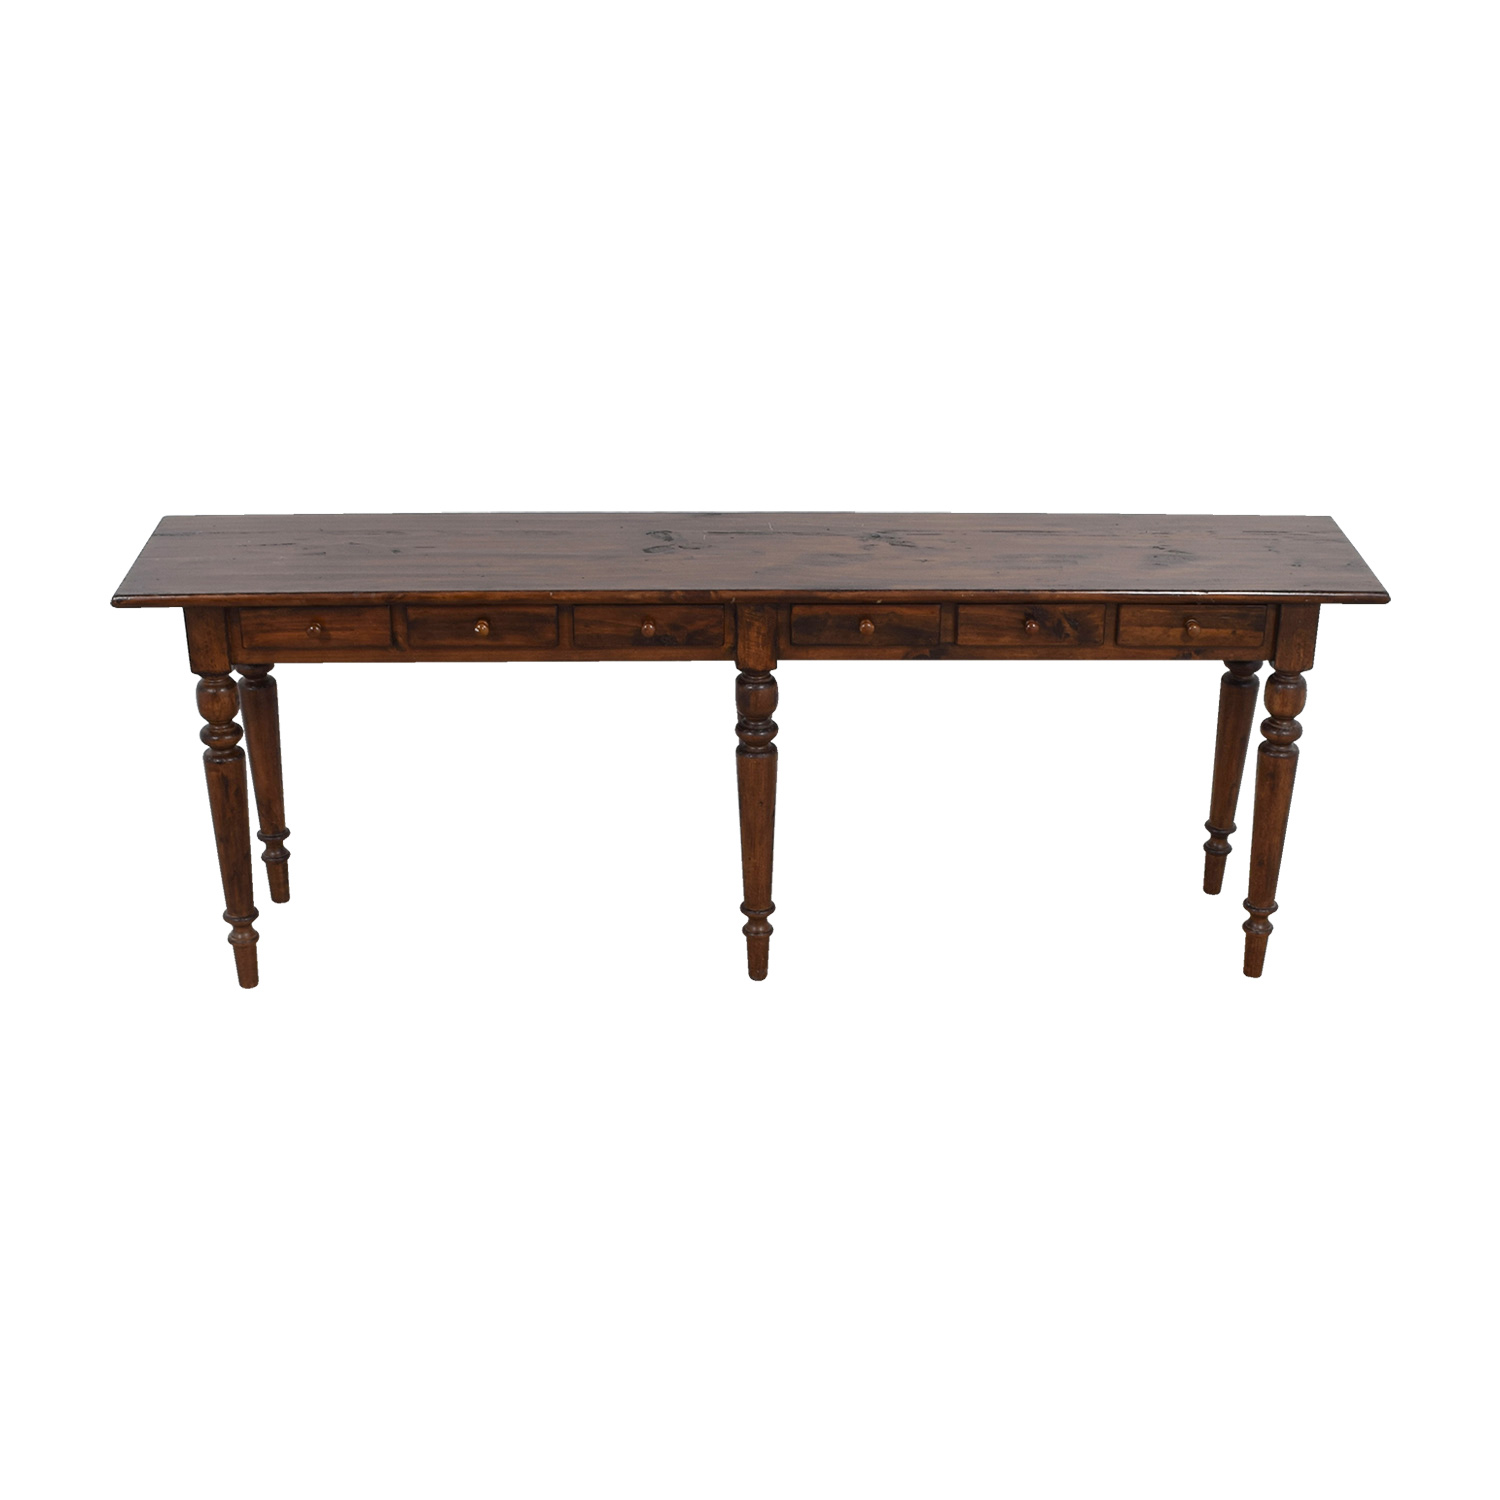 Pottery Barn Pottery Barn Tivoli Six-Drawer Console Table Tables